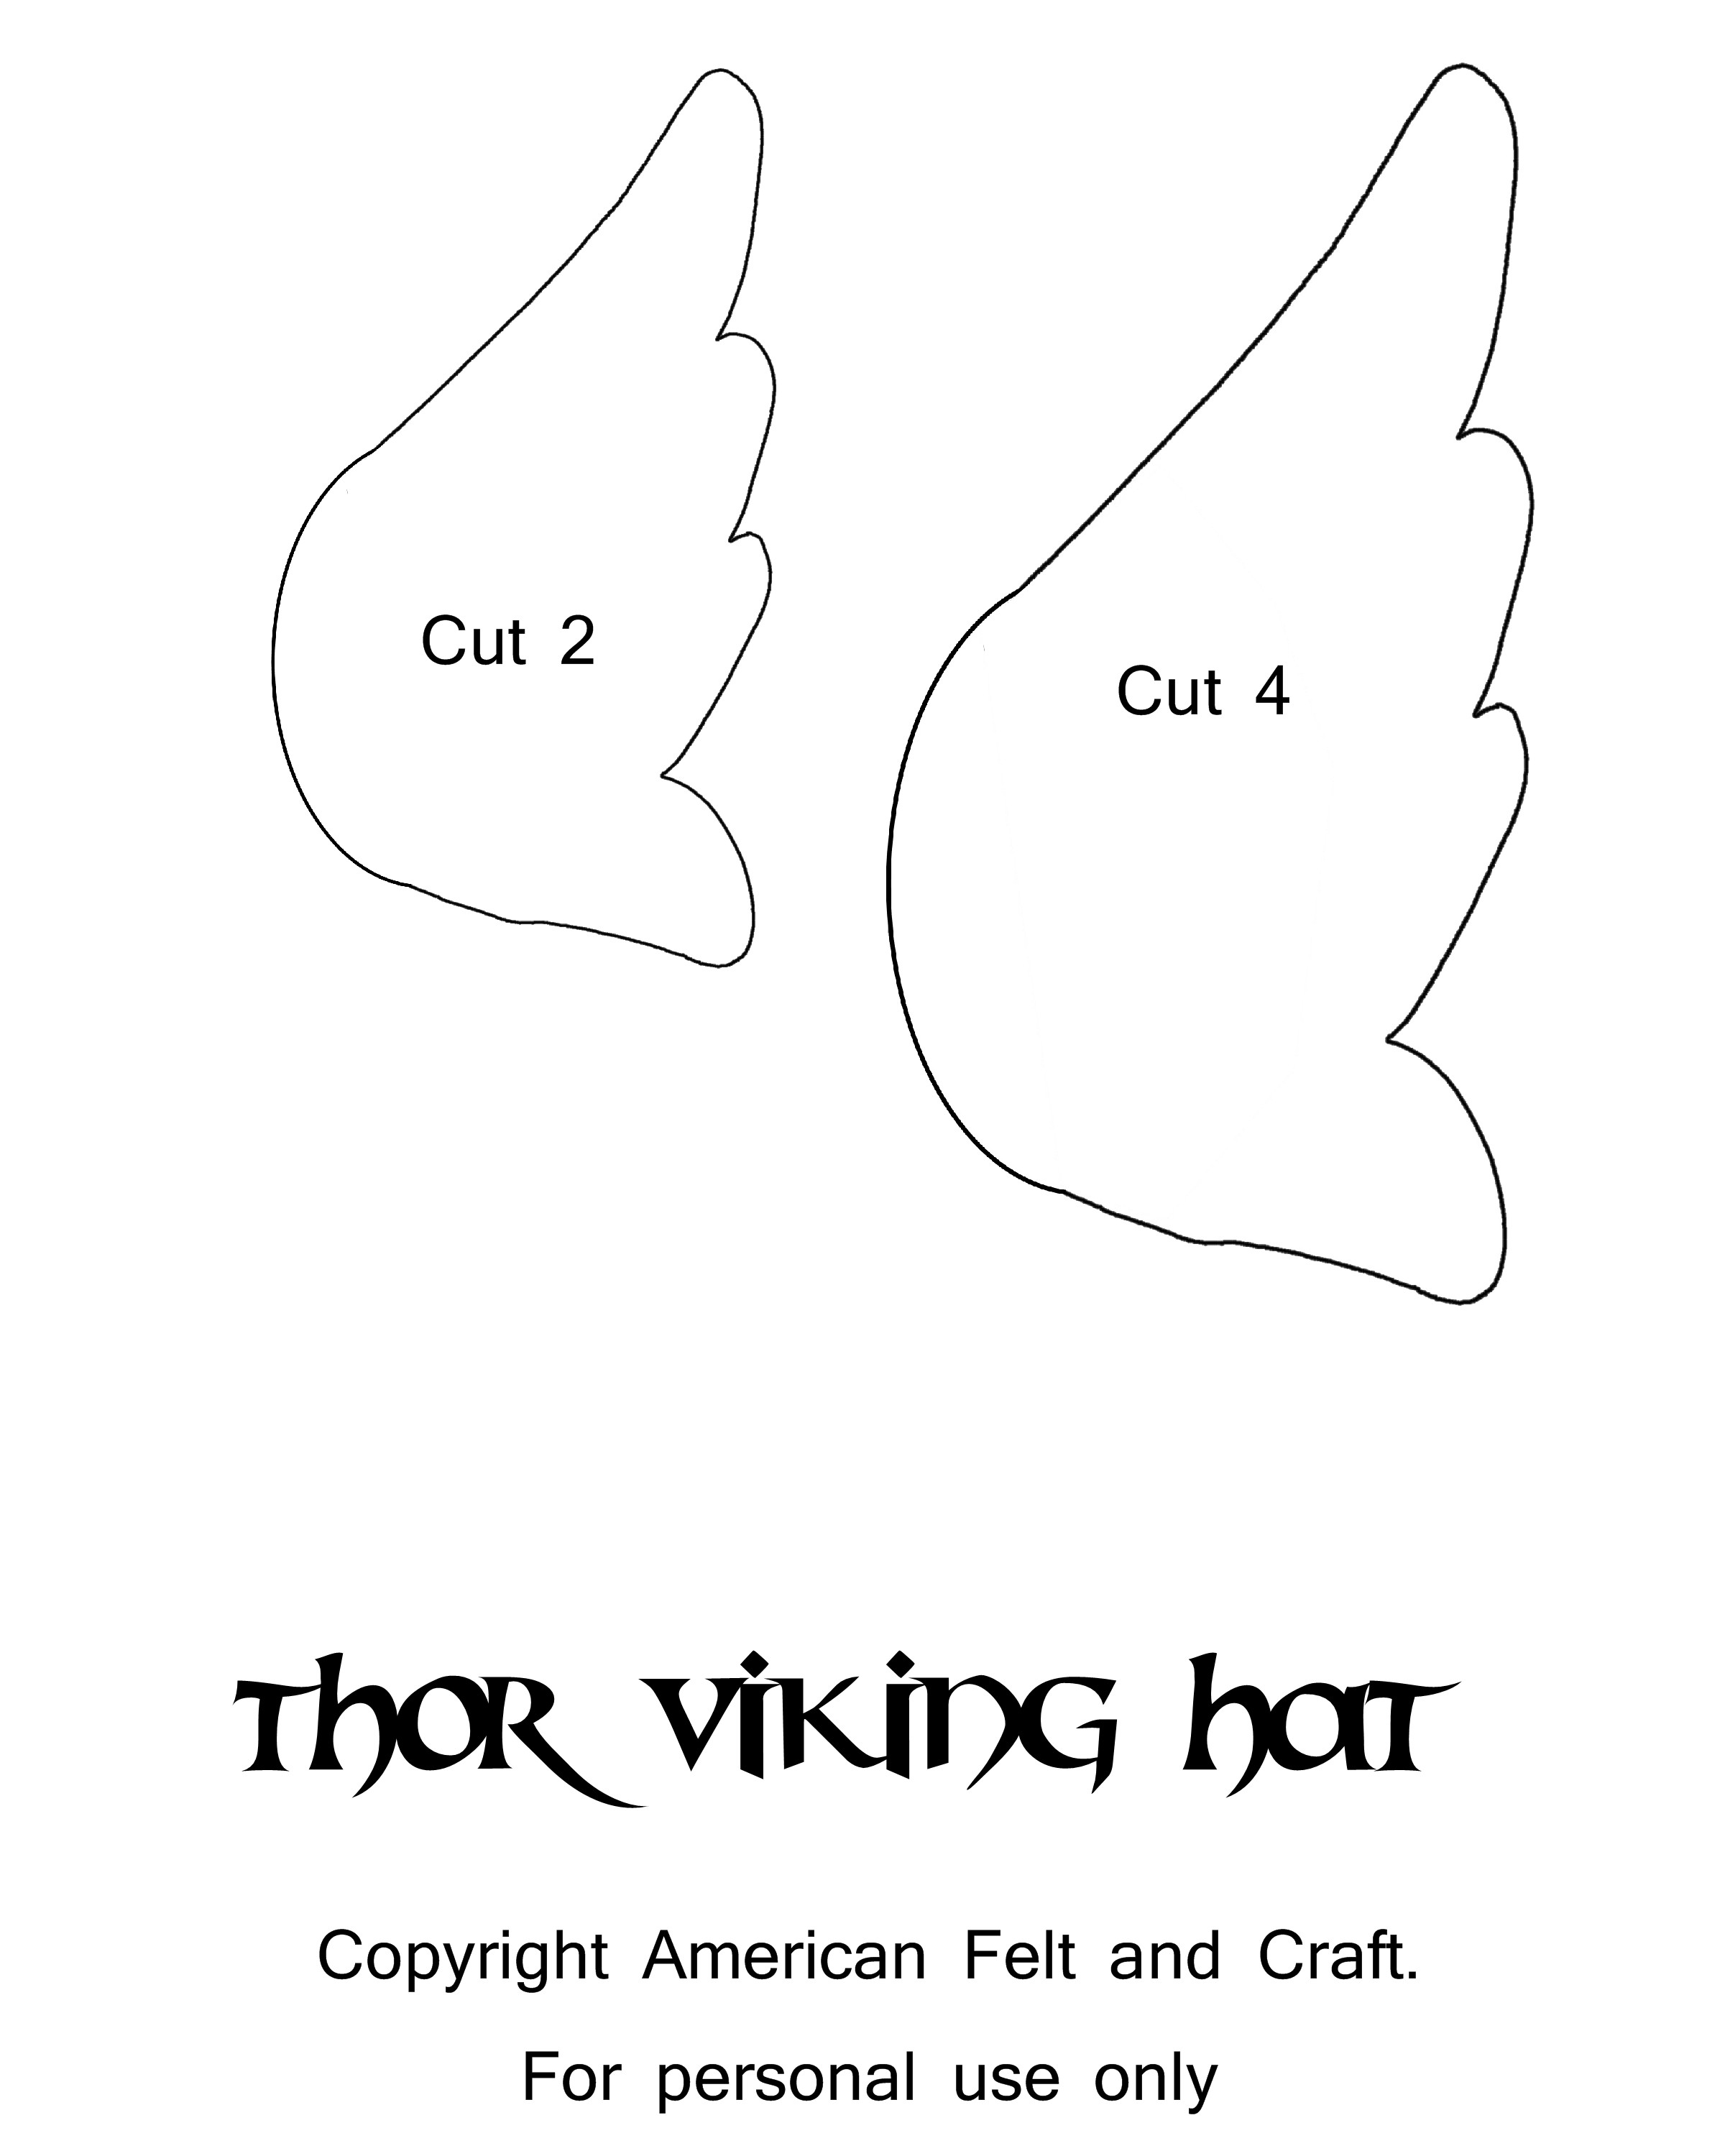 graphic about Snitch Wings Printable referred to as thor ~American Felt Craft ~ Web site